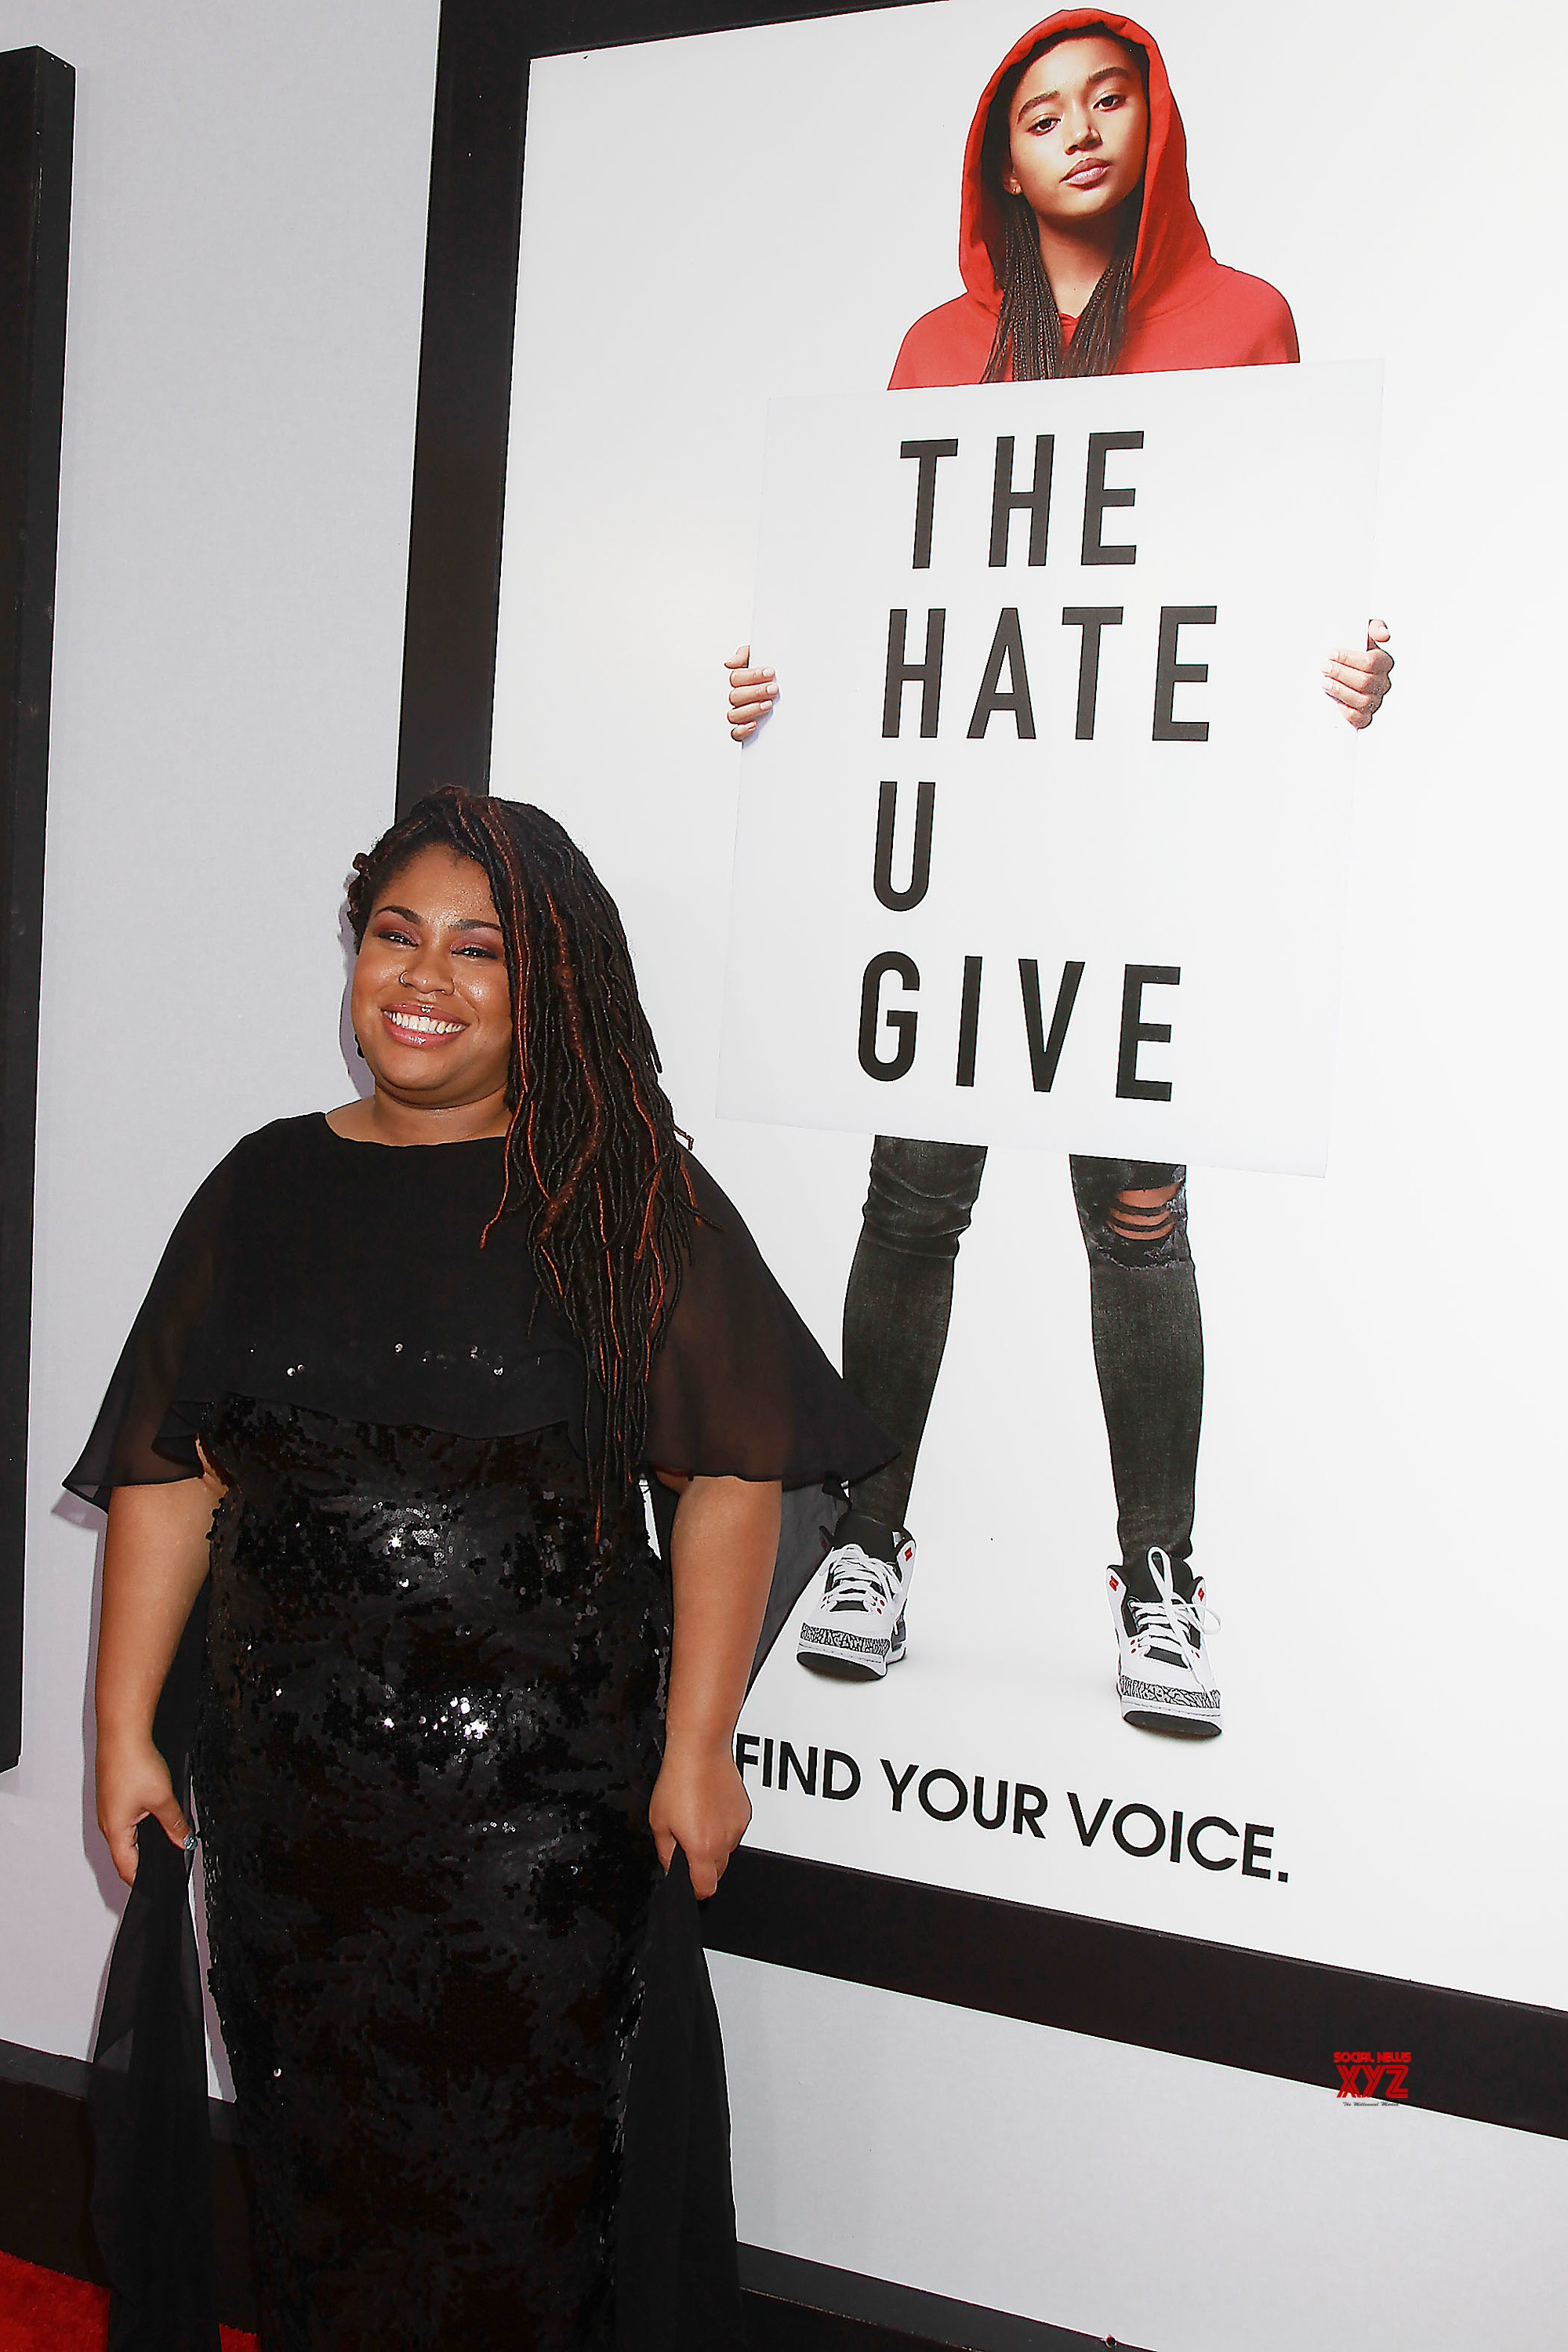 The Hate U Give Movie Ny Special Screening Hd Gallery Social News Xyz